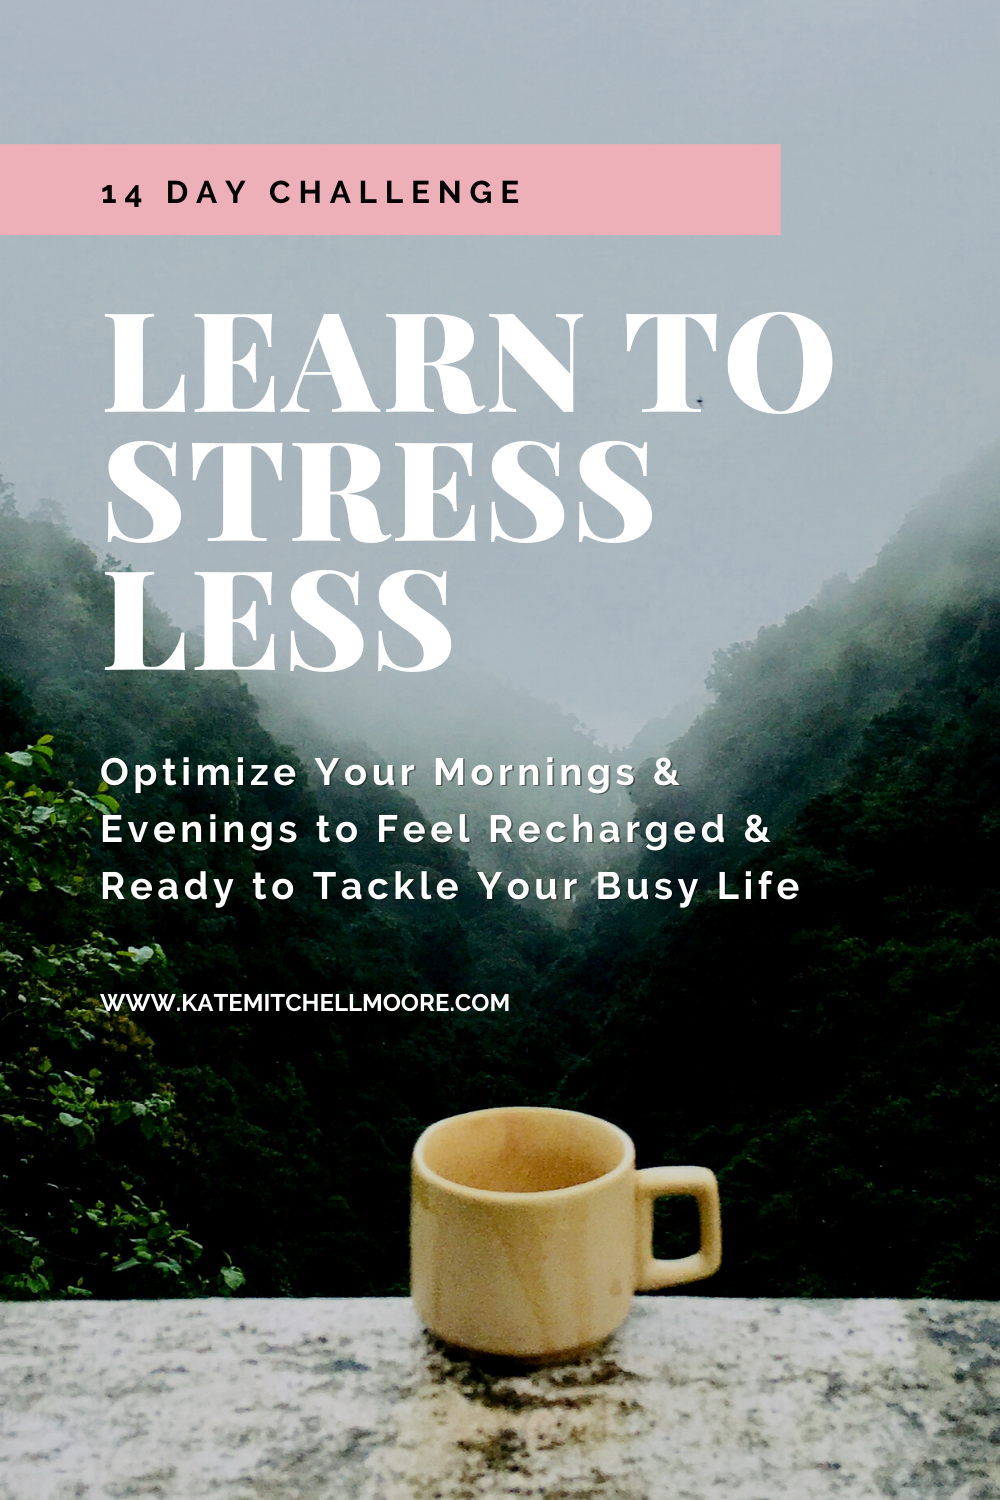 Join the 14-day Stress Less Challenge!